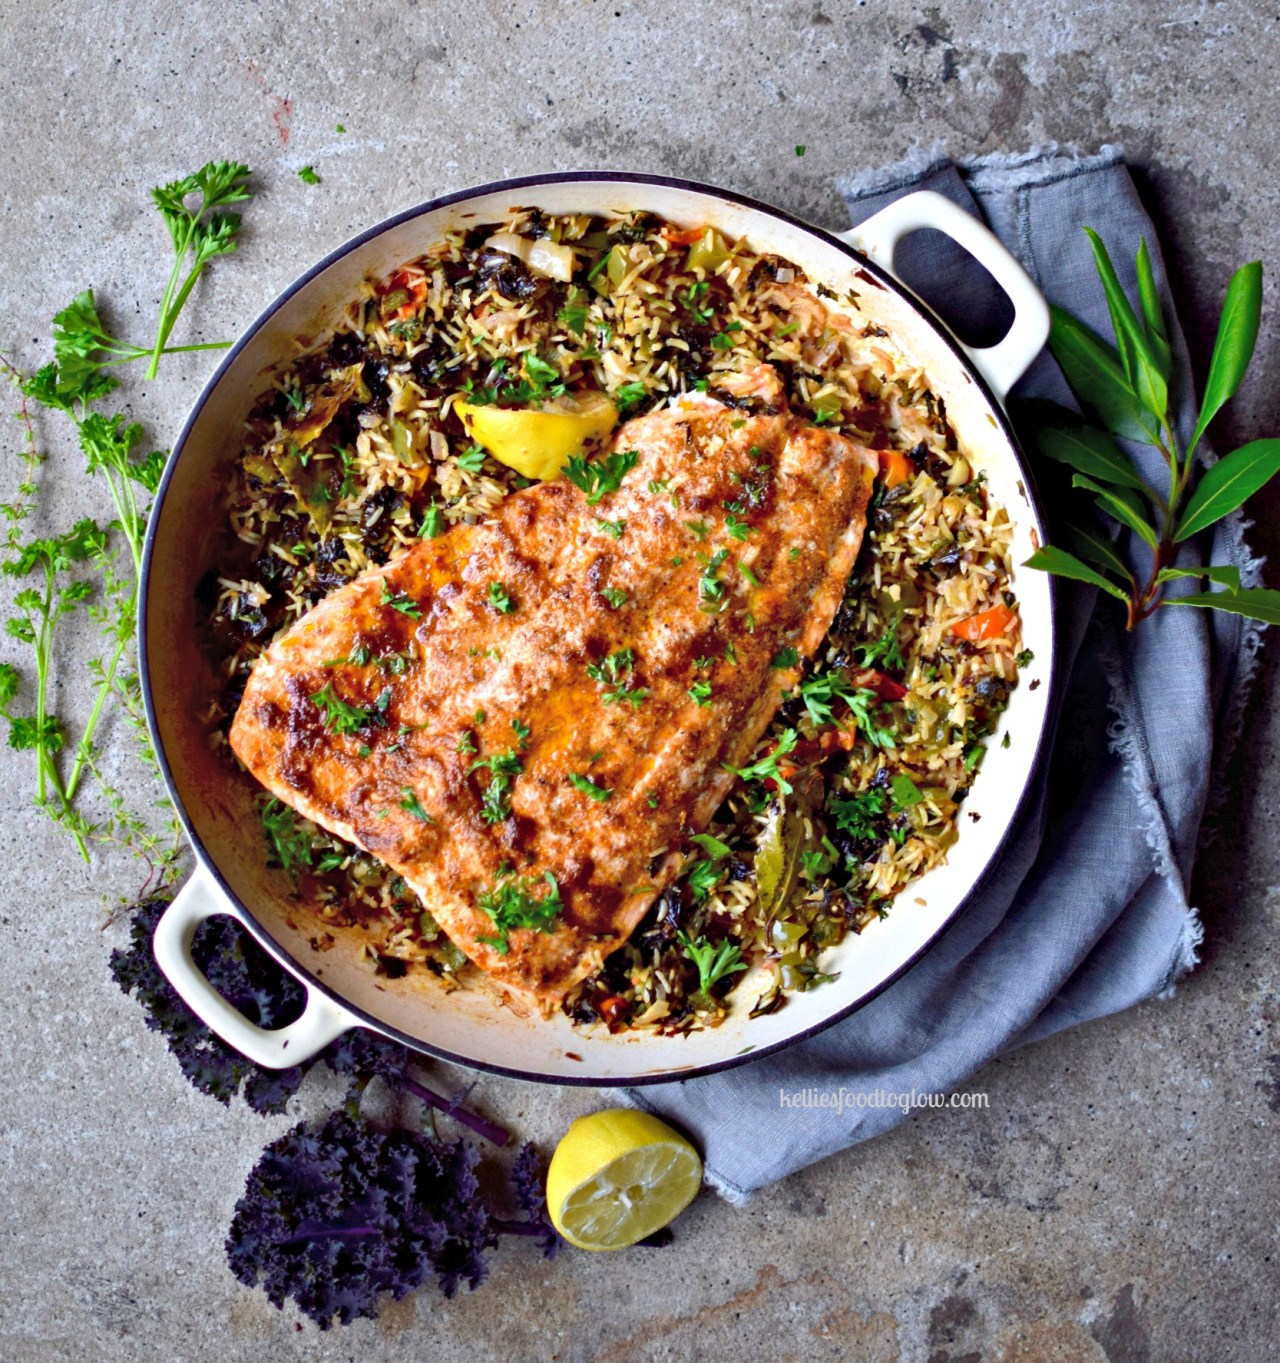 """Pearly-pink salmon kept juicywith a coating of creole spices and olive oil, cooked over vegetable-filled """"dirty"""" brown rice. Healthy, family-friendly and surprisingly quick and easy for a midweek dinner. Leftovers are great cold in a wrap - lettuce or grain."""